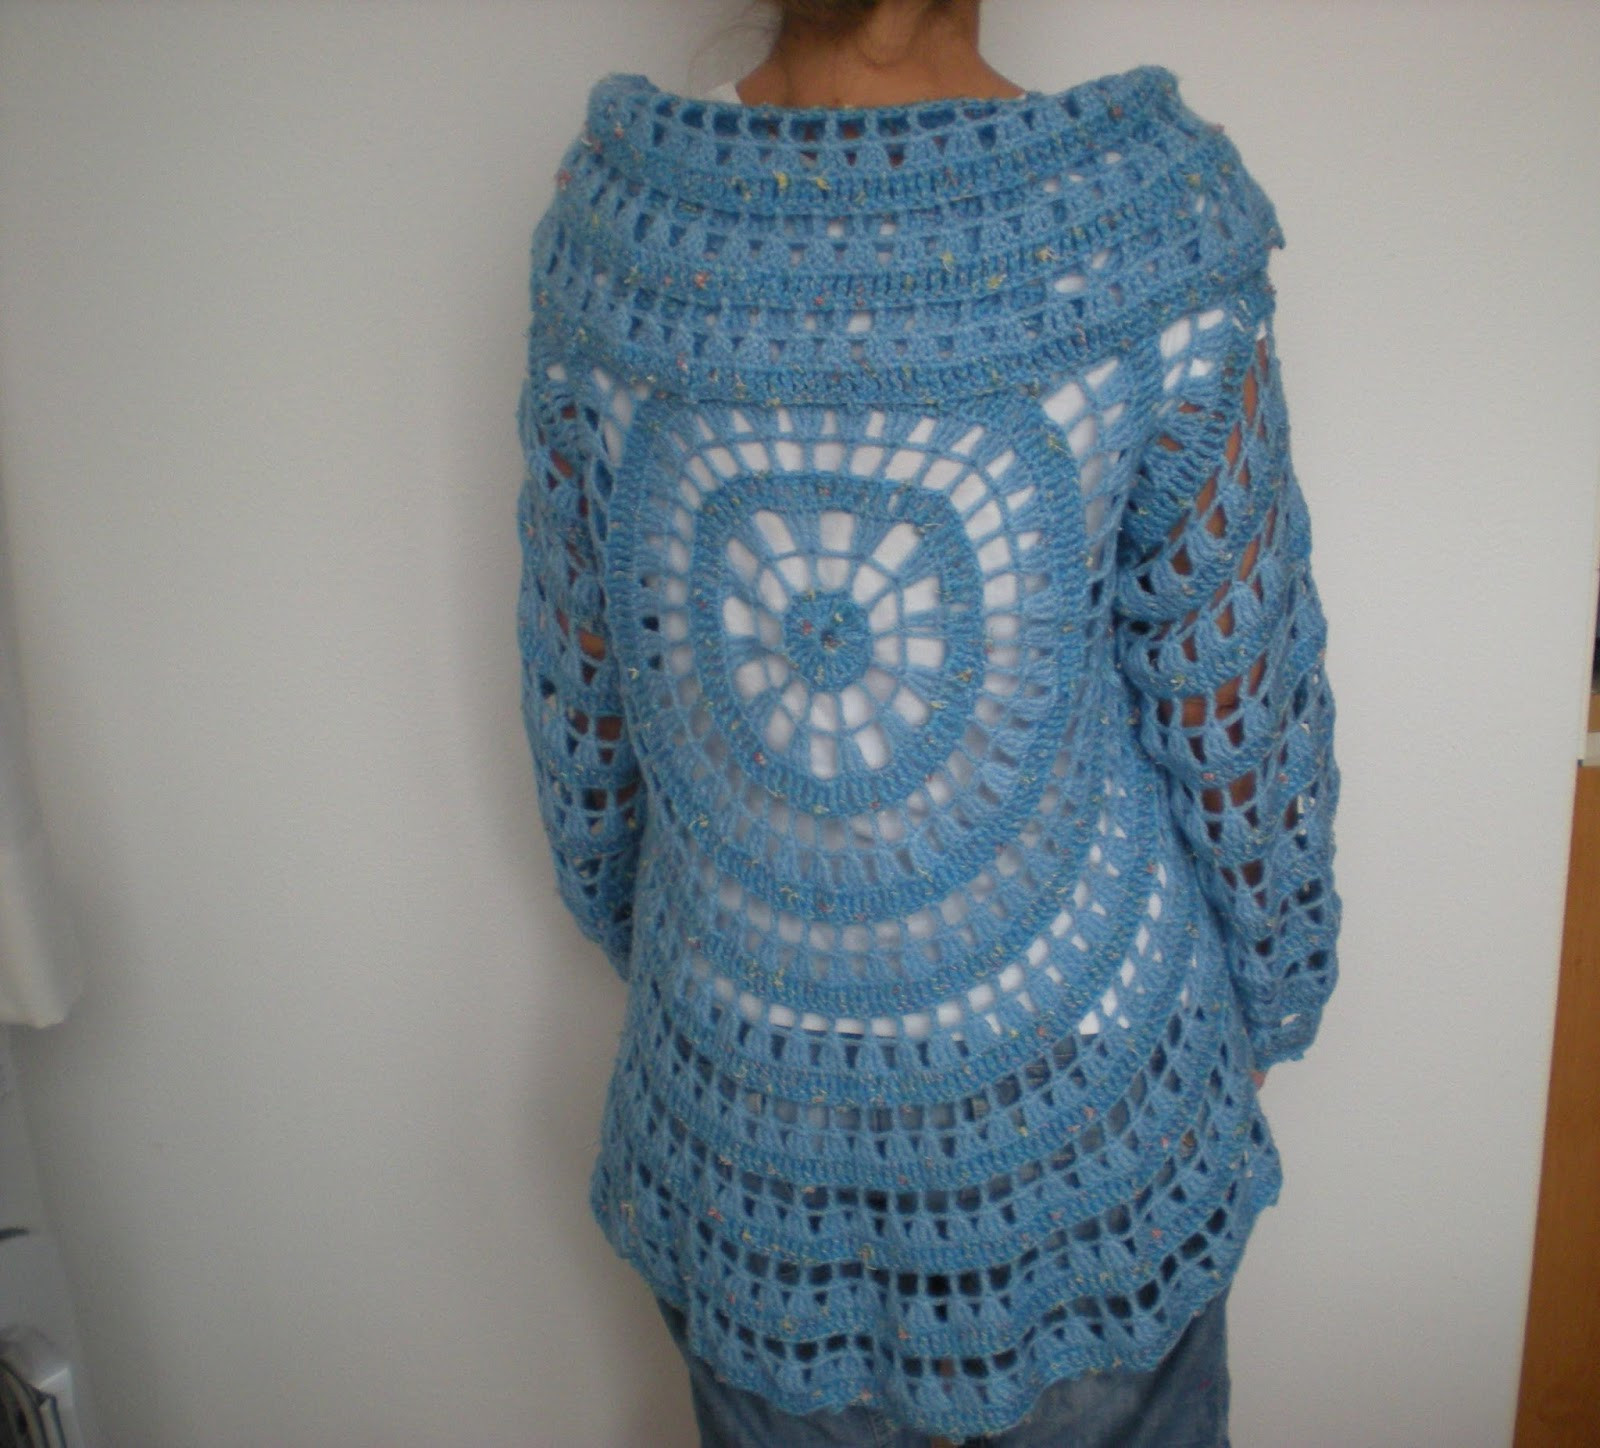 Crochet Cardigan Free Pattern Awesome Emmhouse Another Circular Cardigan – Free Crochet Pattern Of Top 49 Pics Crochet Cardigan Free Pattern